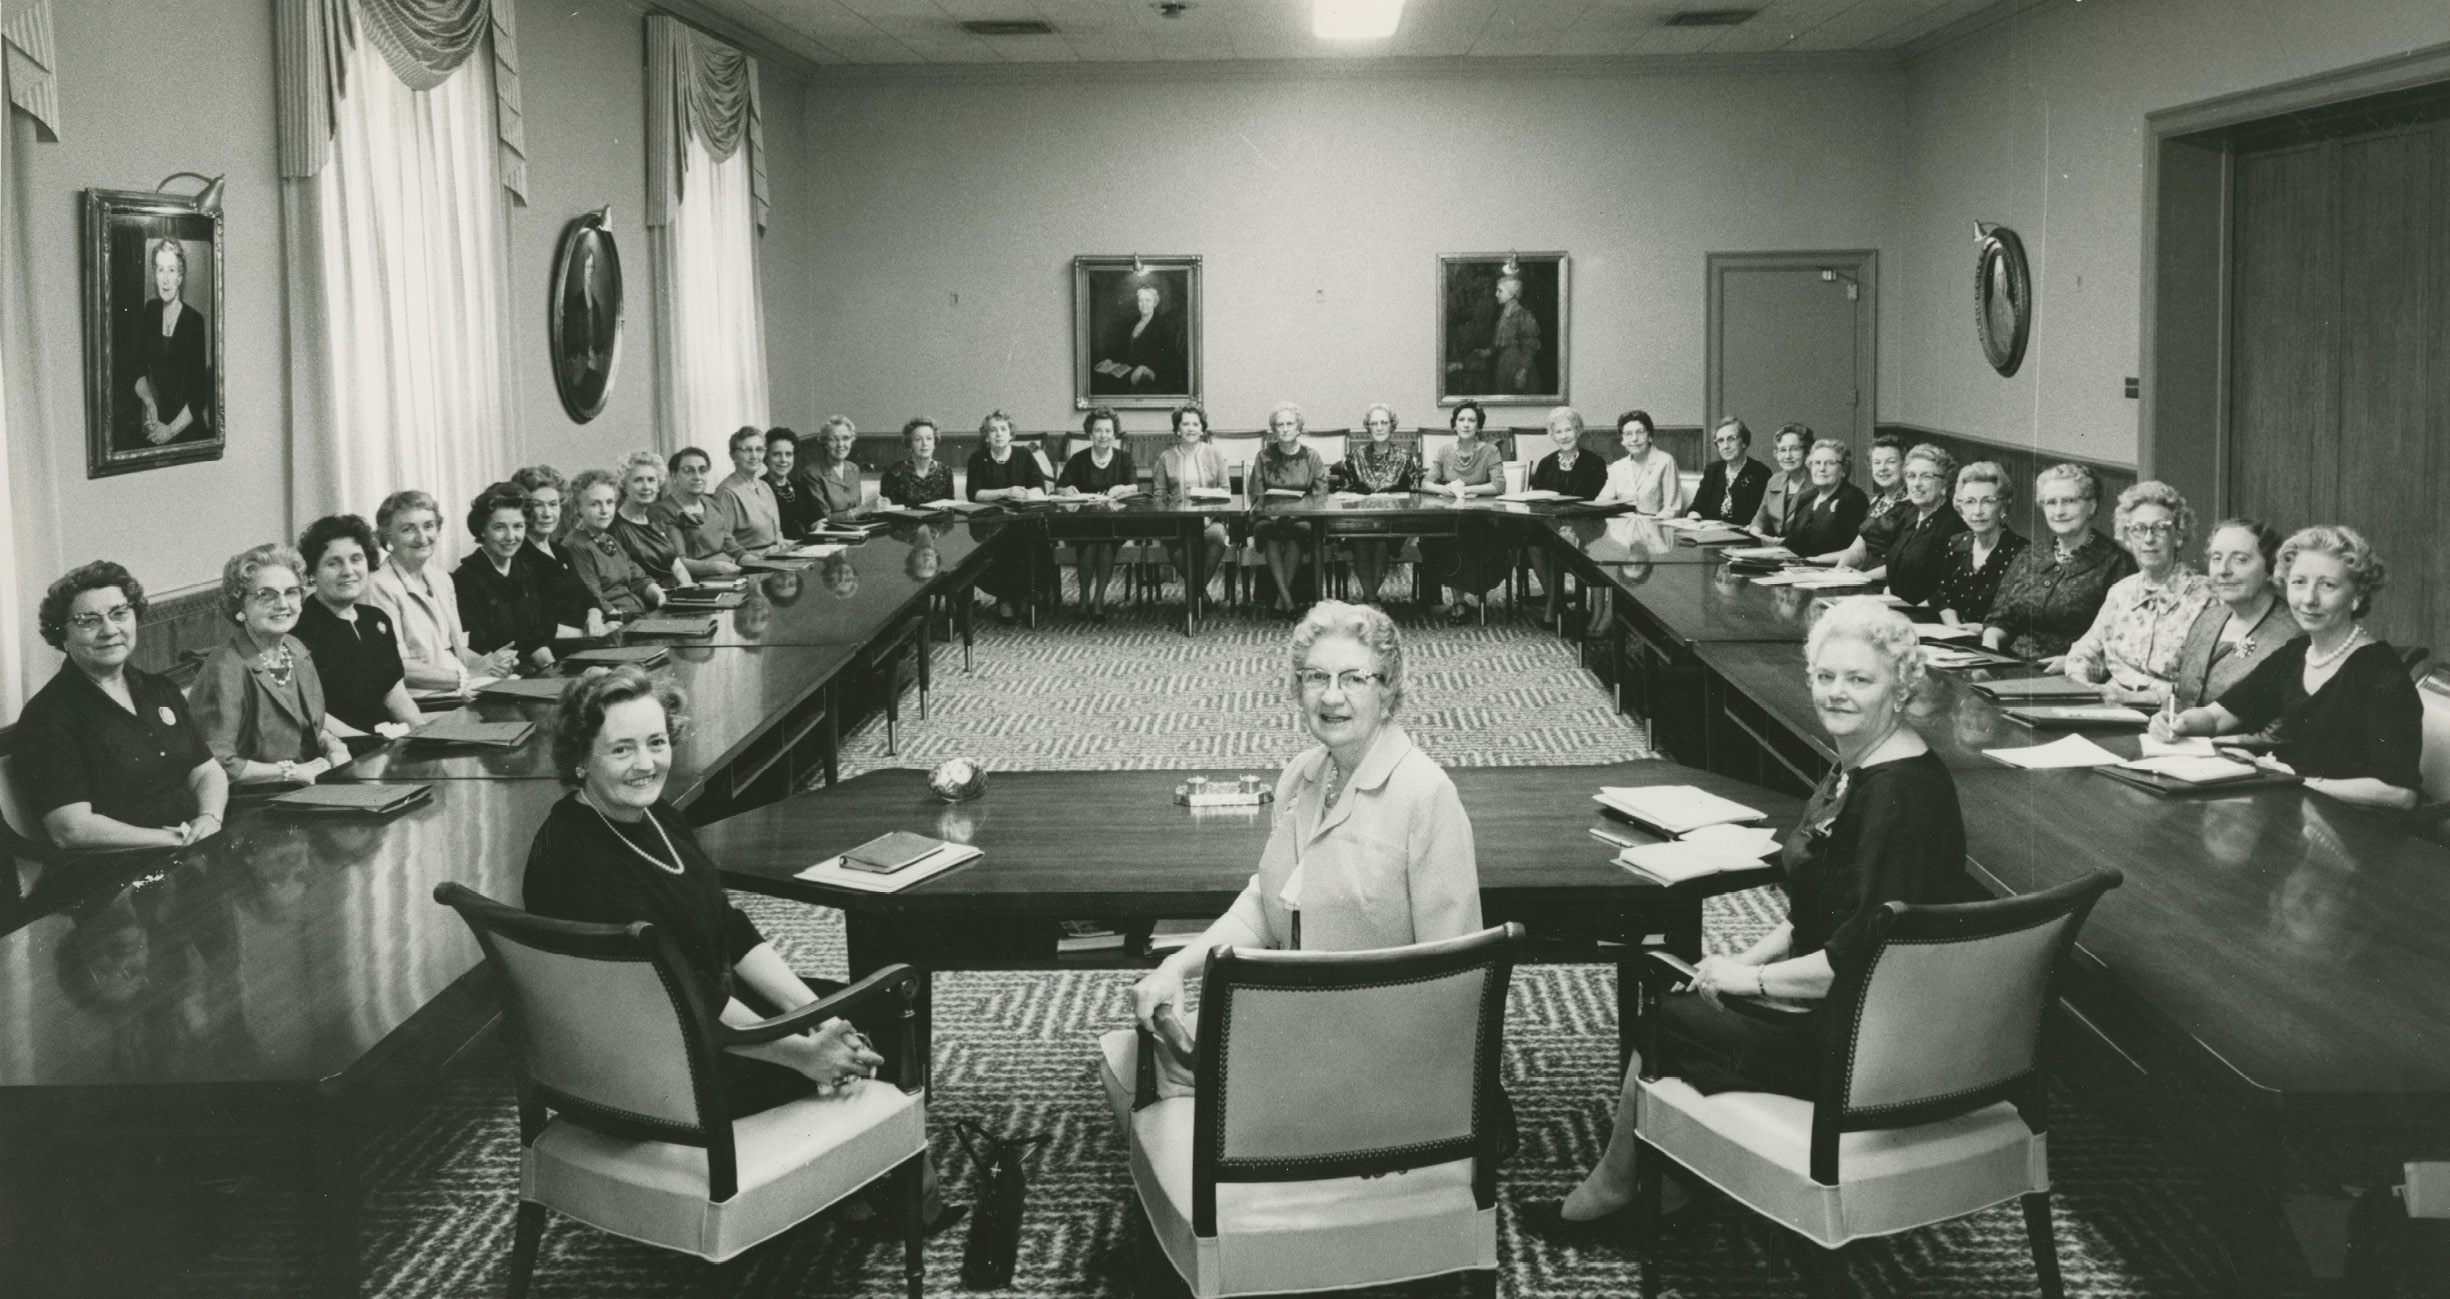 Sisters Belle S. Spafford, Marianne C. Sharp and Louise W. Madsen with the Relief Society general board in 1962, with members of the presidency at the head of the table. Left to right: Sisters Madsen, Spafford and Sharp, the Relief Society general board poses in the 6-year-old Relief Society Building. Board members trained Relief Society units throughout the world, oversaw temple clothing production, published the Relief Society Magazine, and created Relief Society curriculum. Photograph by J. M. Heslop.